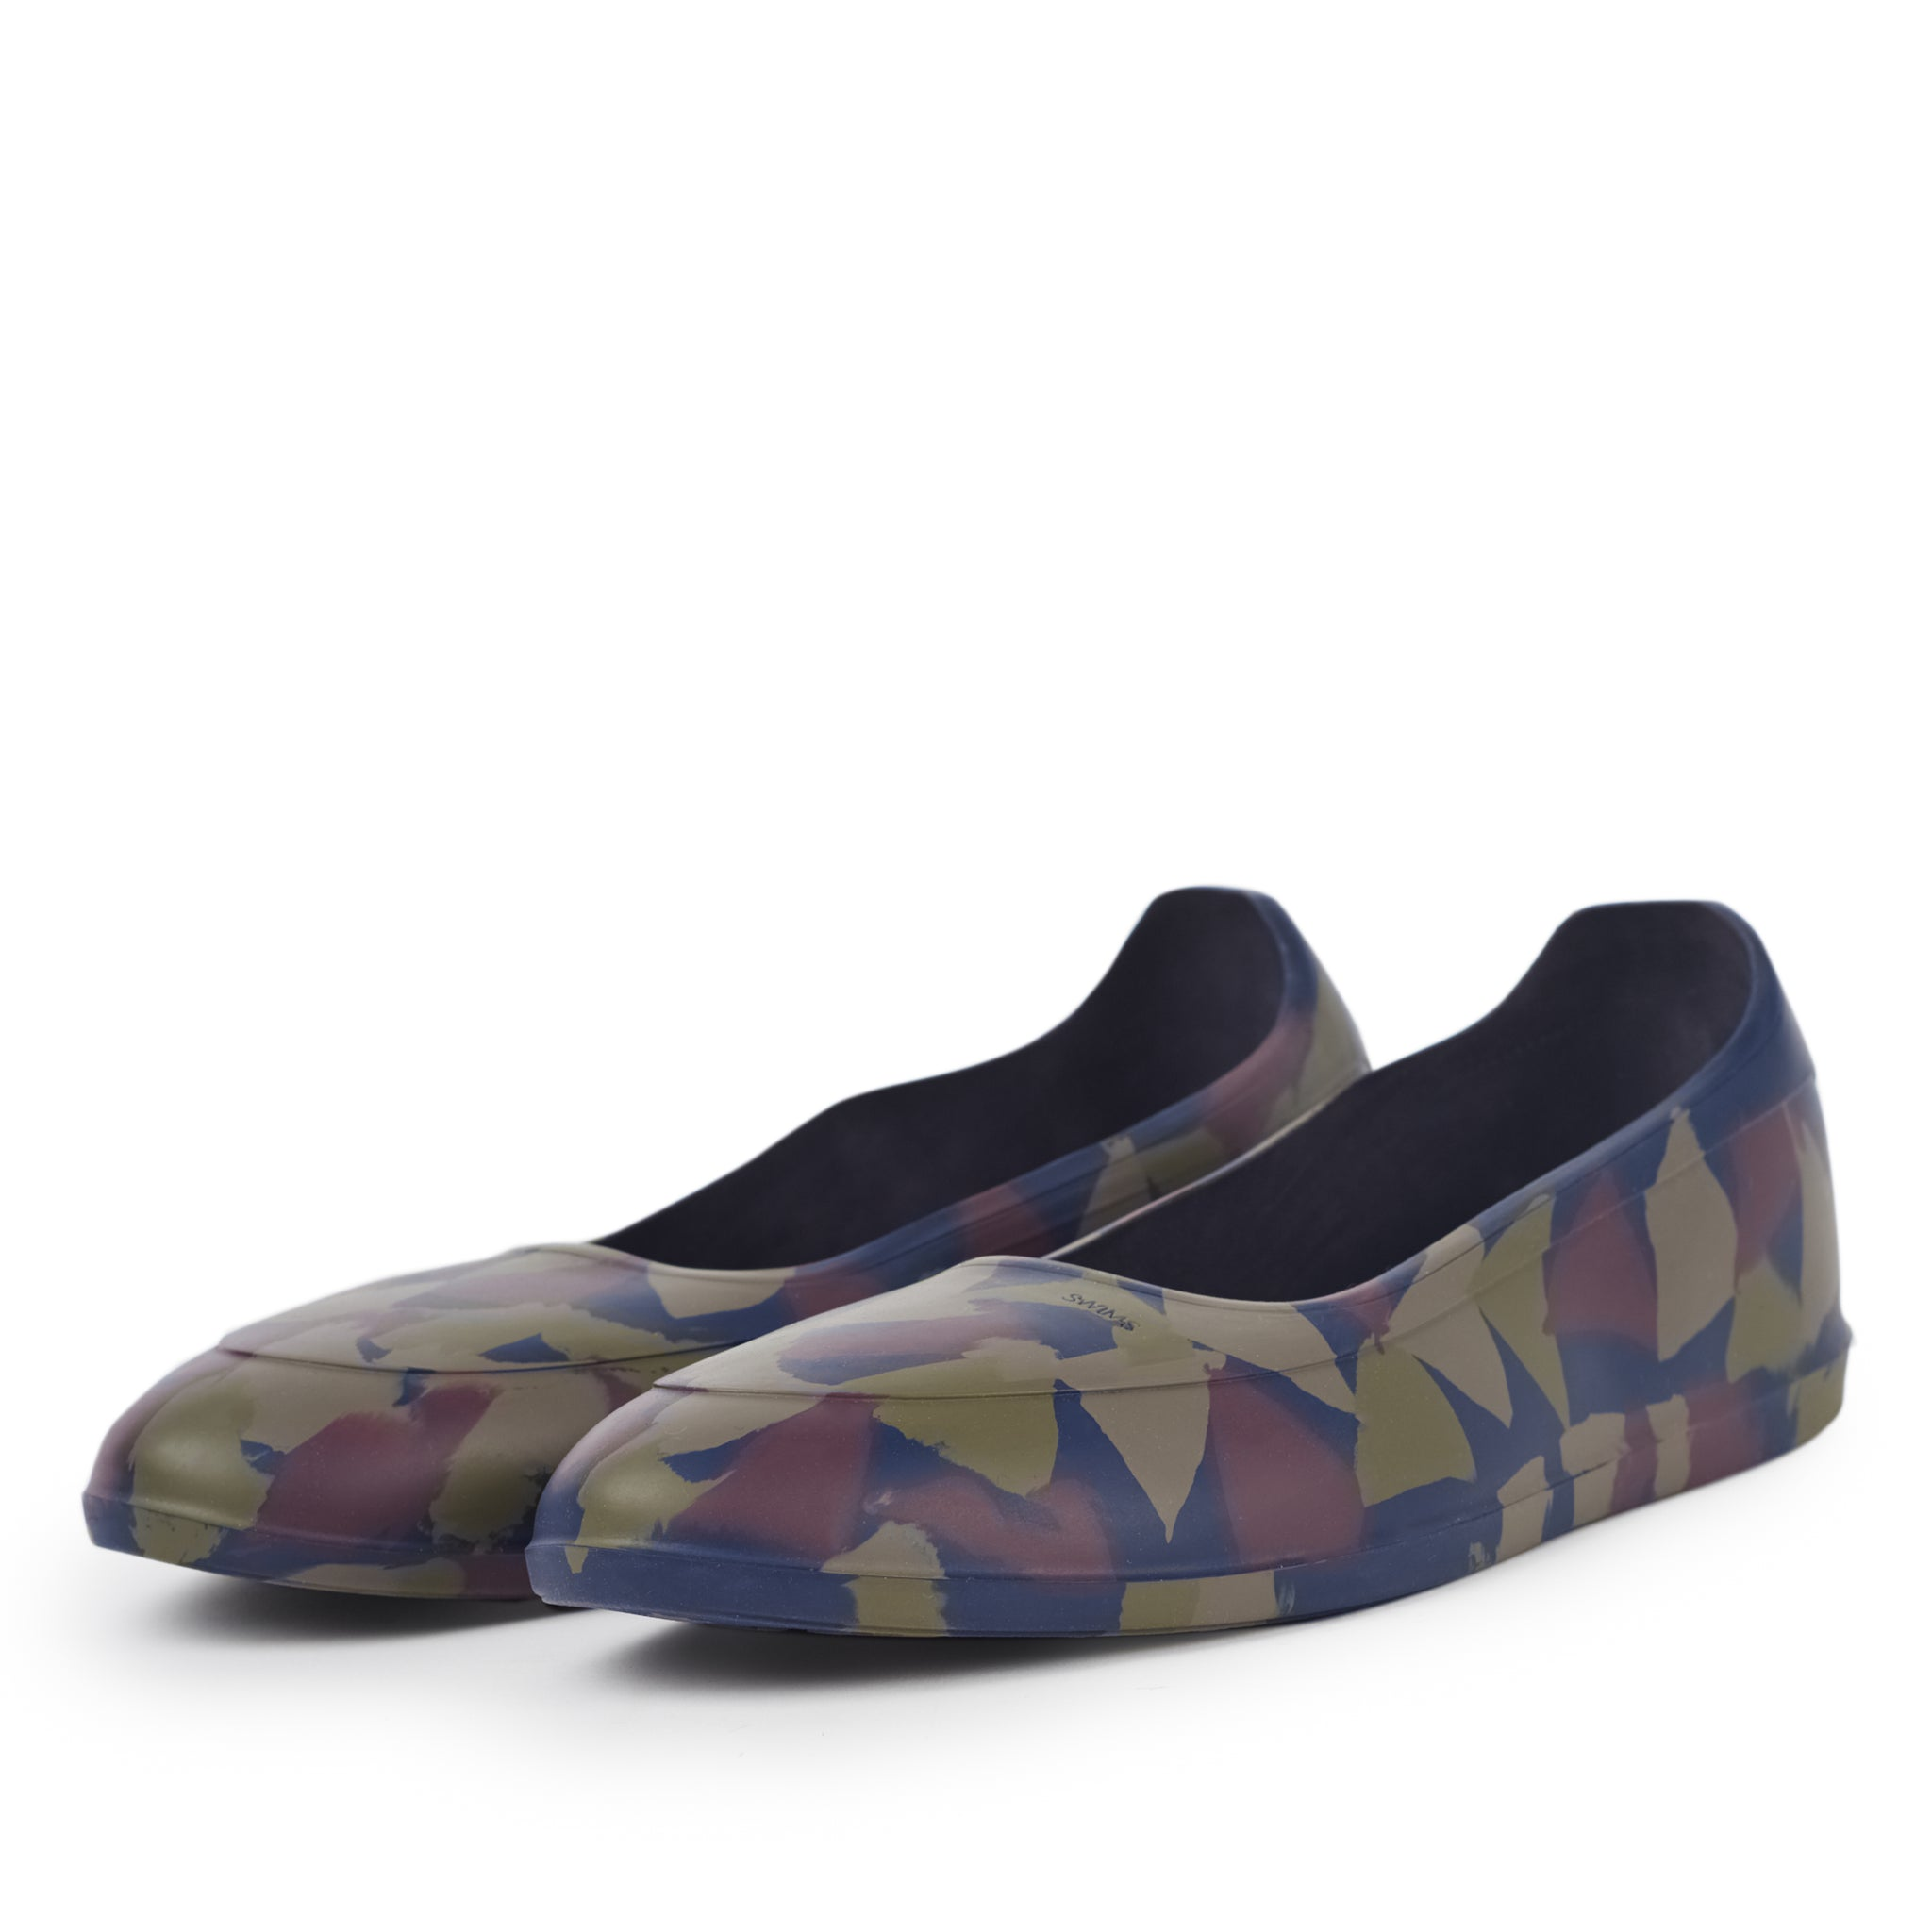 Cubrezapatos lluvia Camo Morado by Swims